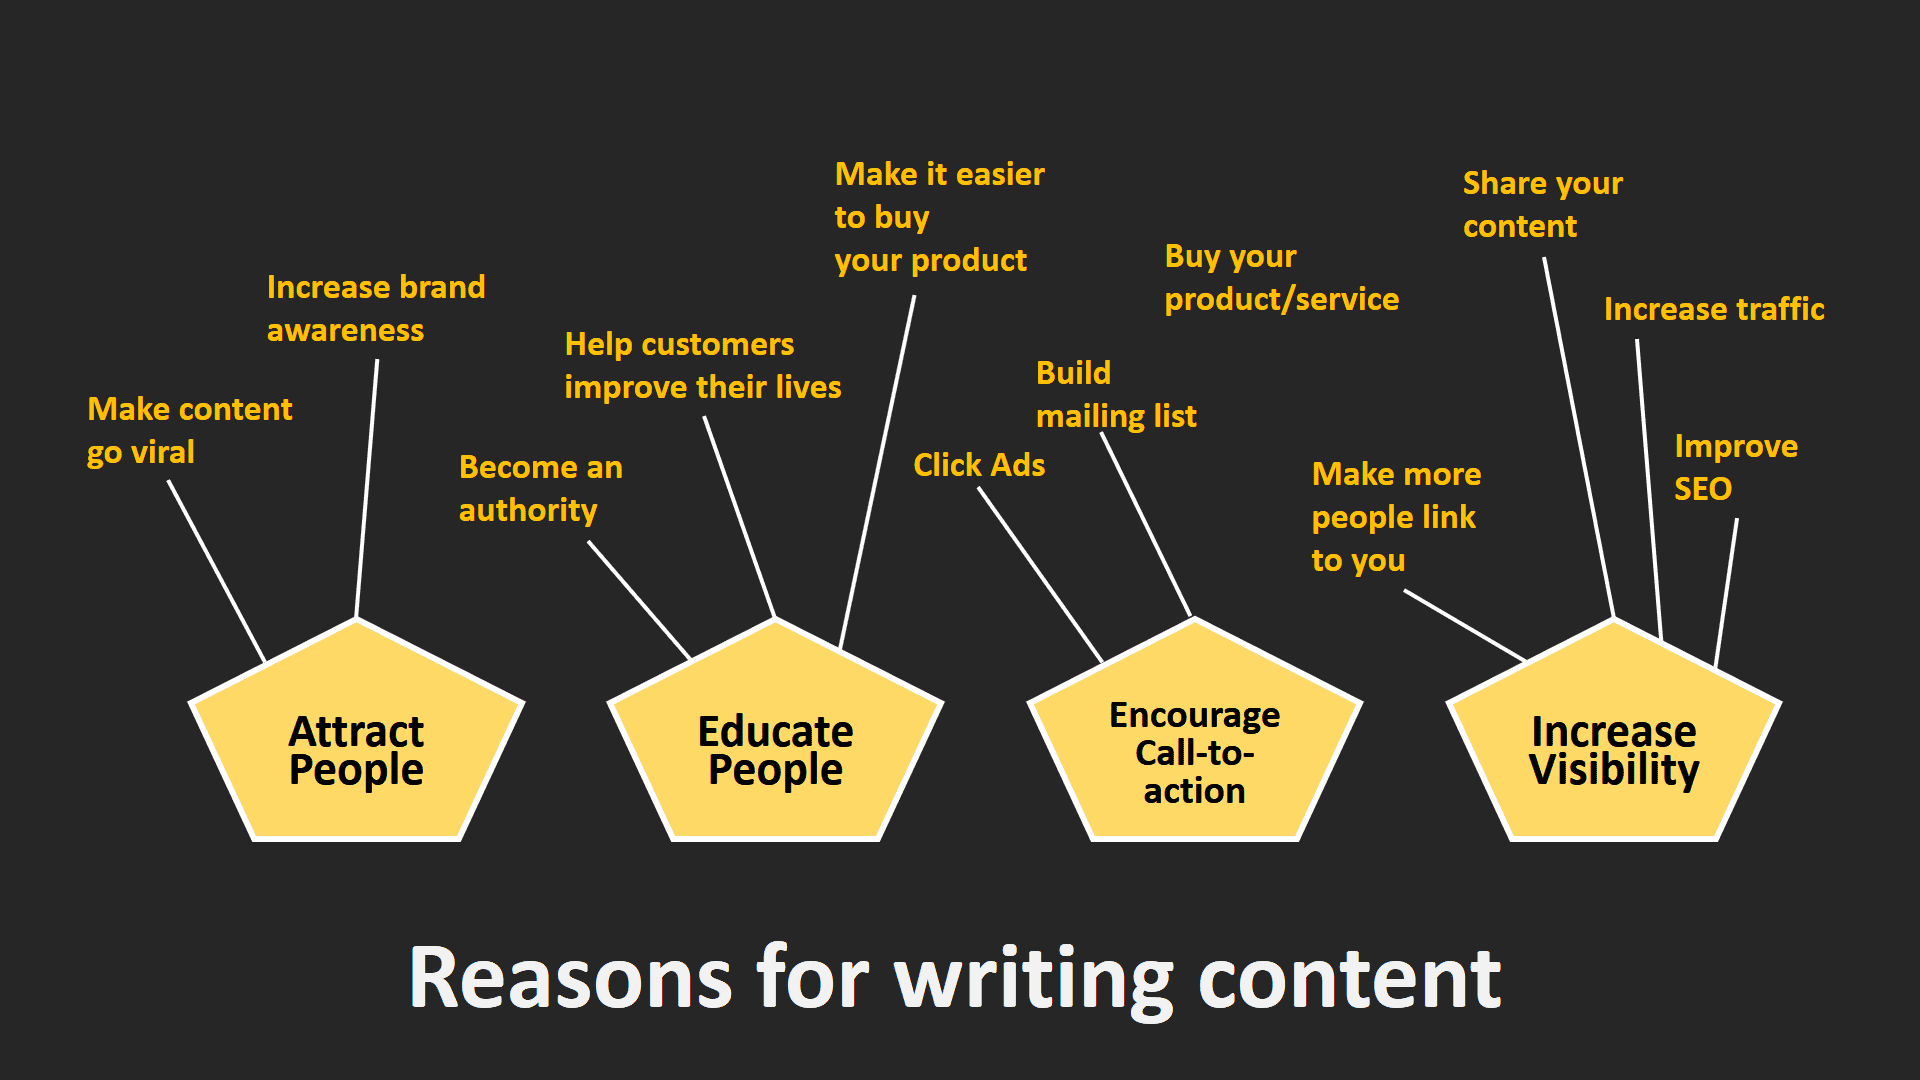 Different reasons for writing content